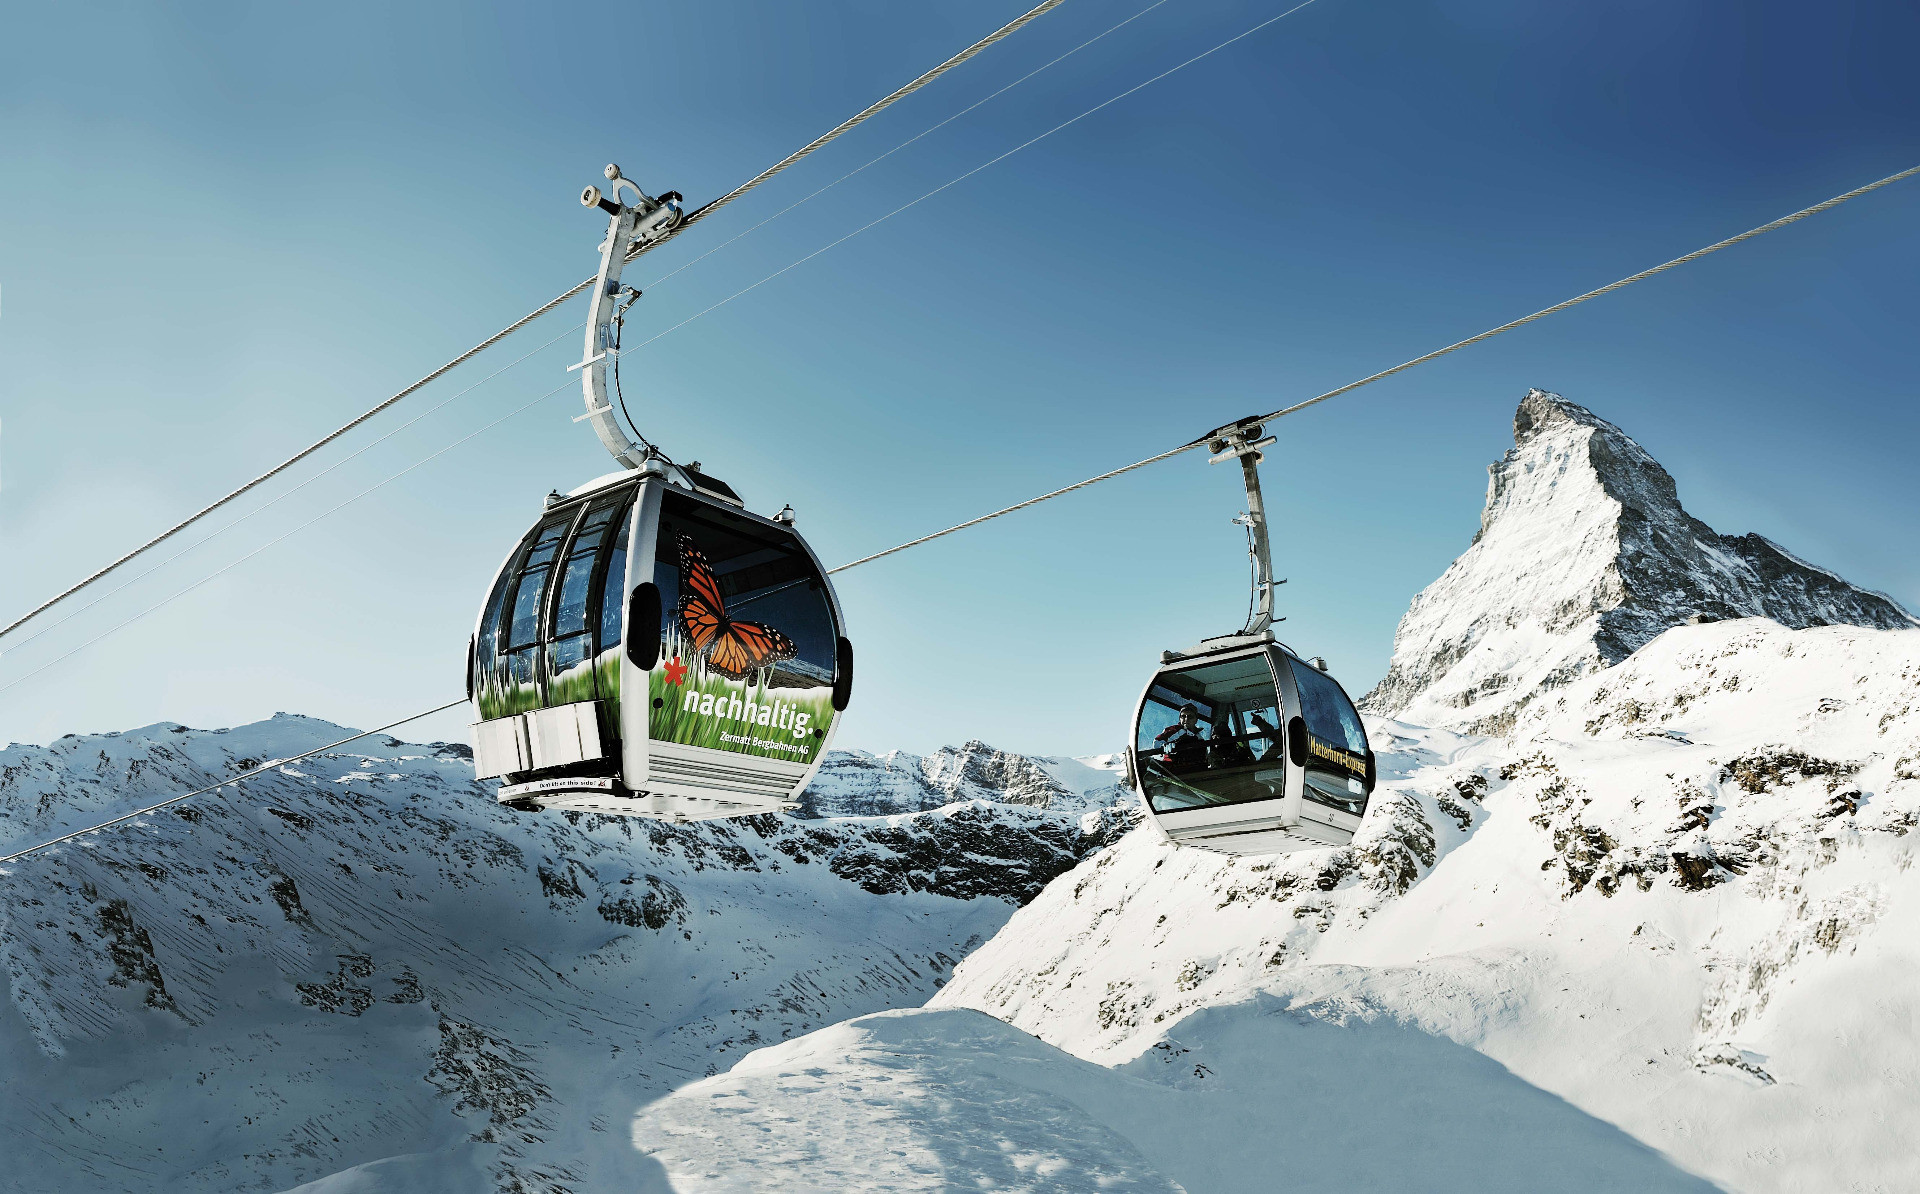 Gondola to the Matterhorn, Zermatt